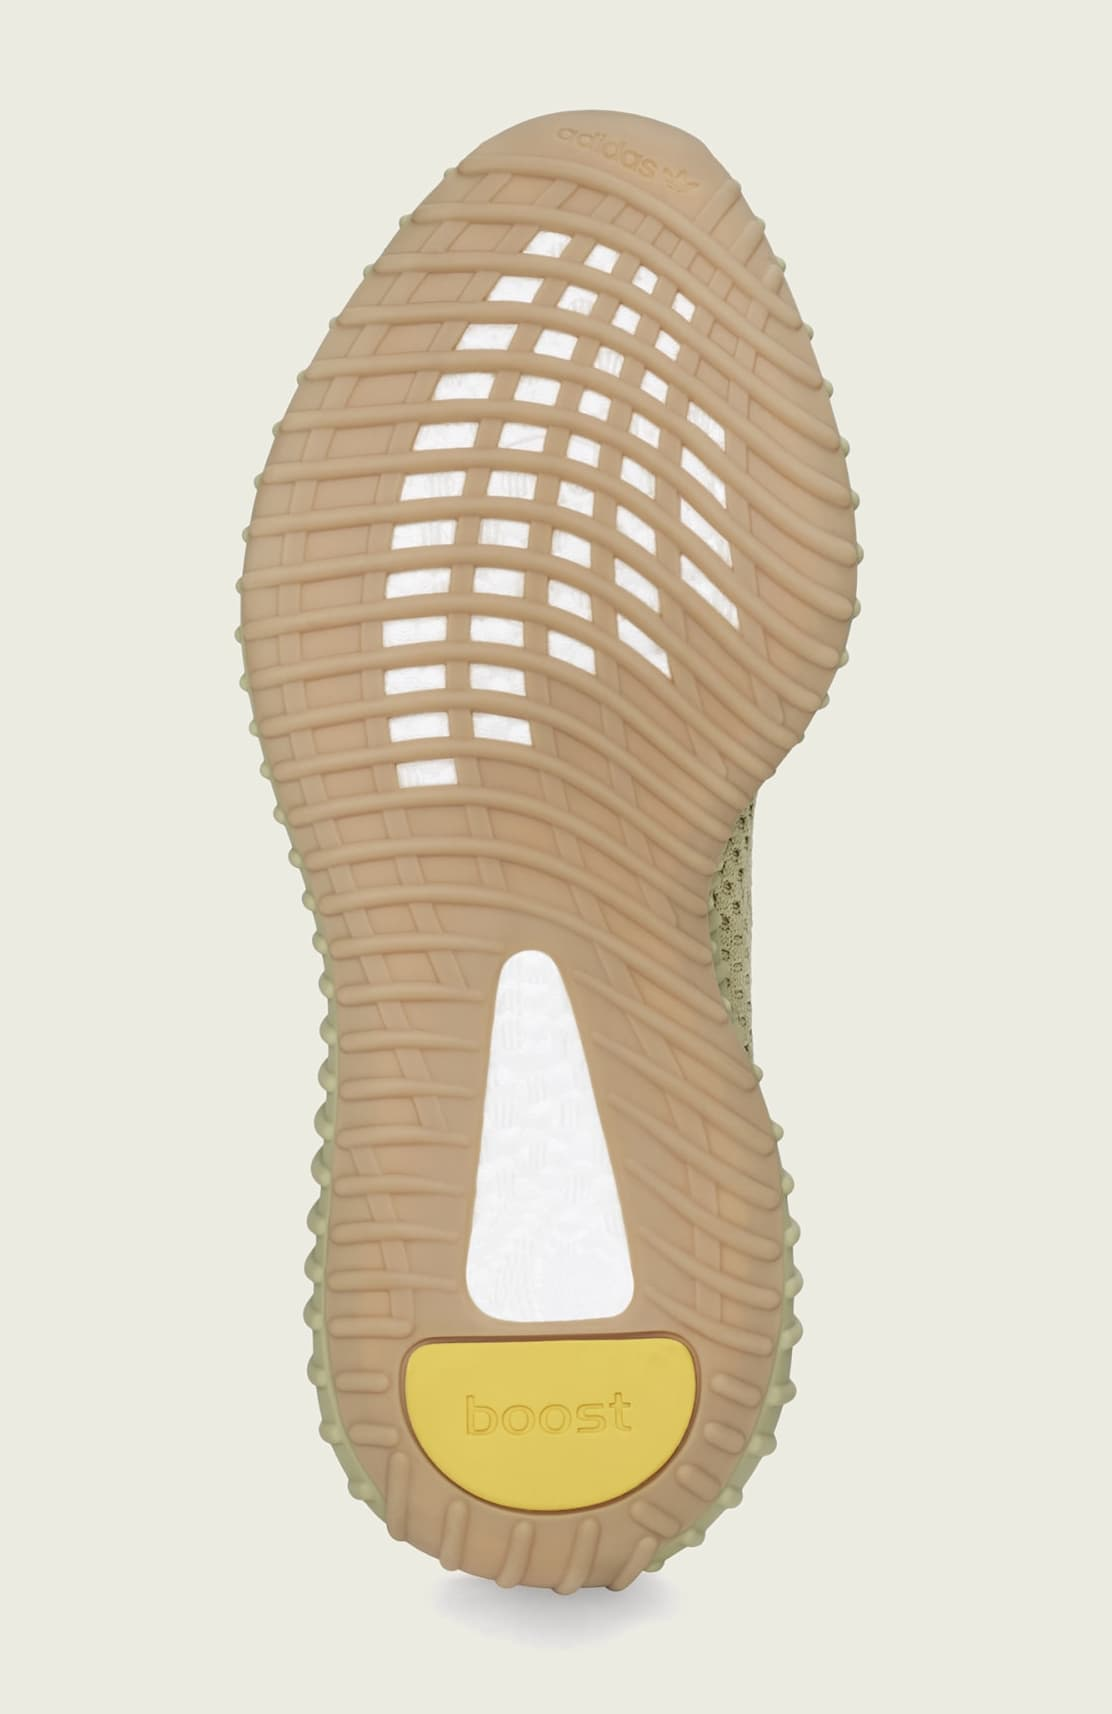 Adidas Yeezy Boost 350 V2 'Sulfur' FY5346 Outsole